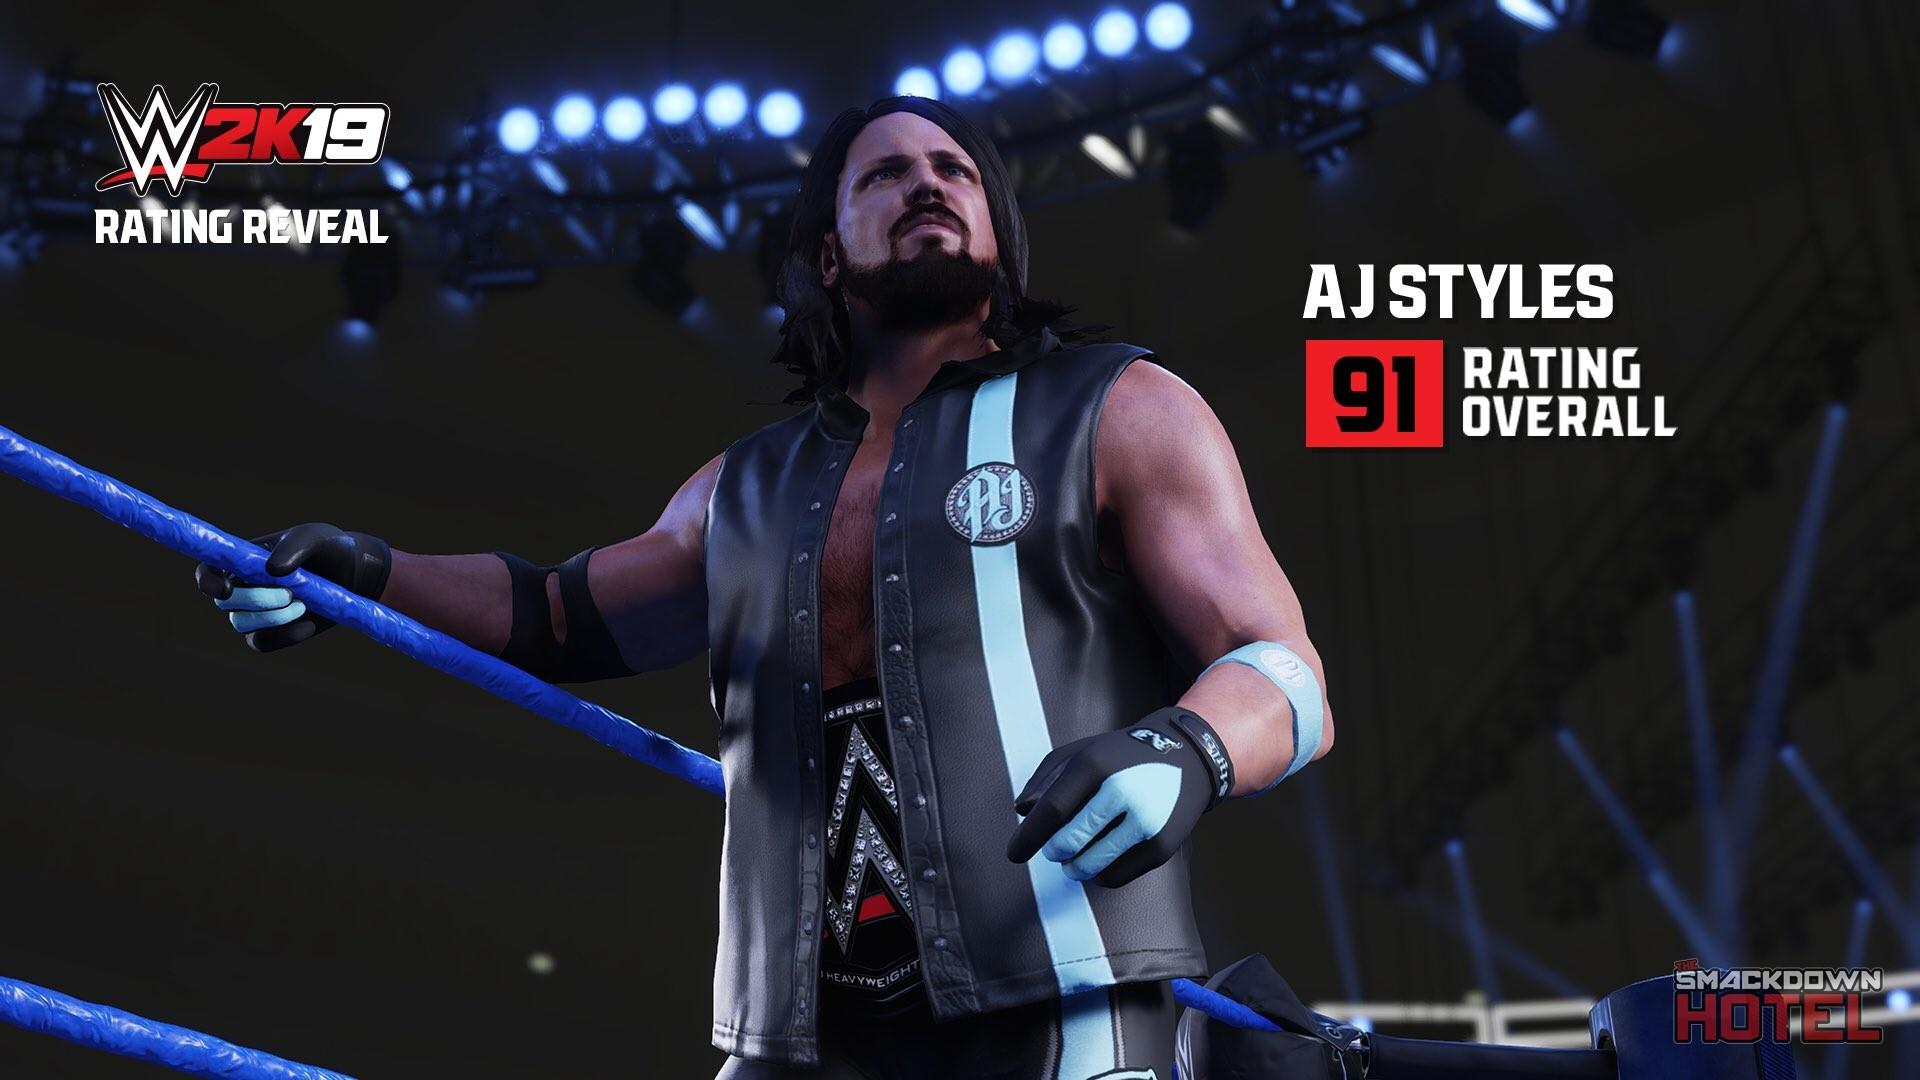 WWE2K19_RatingReveal_AJStyles-15341-1080